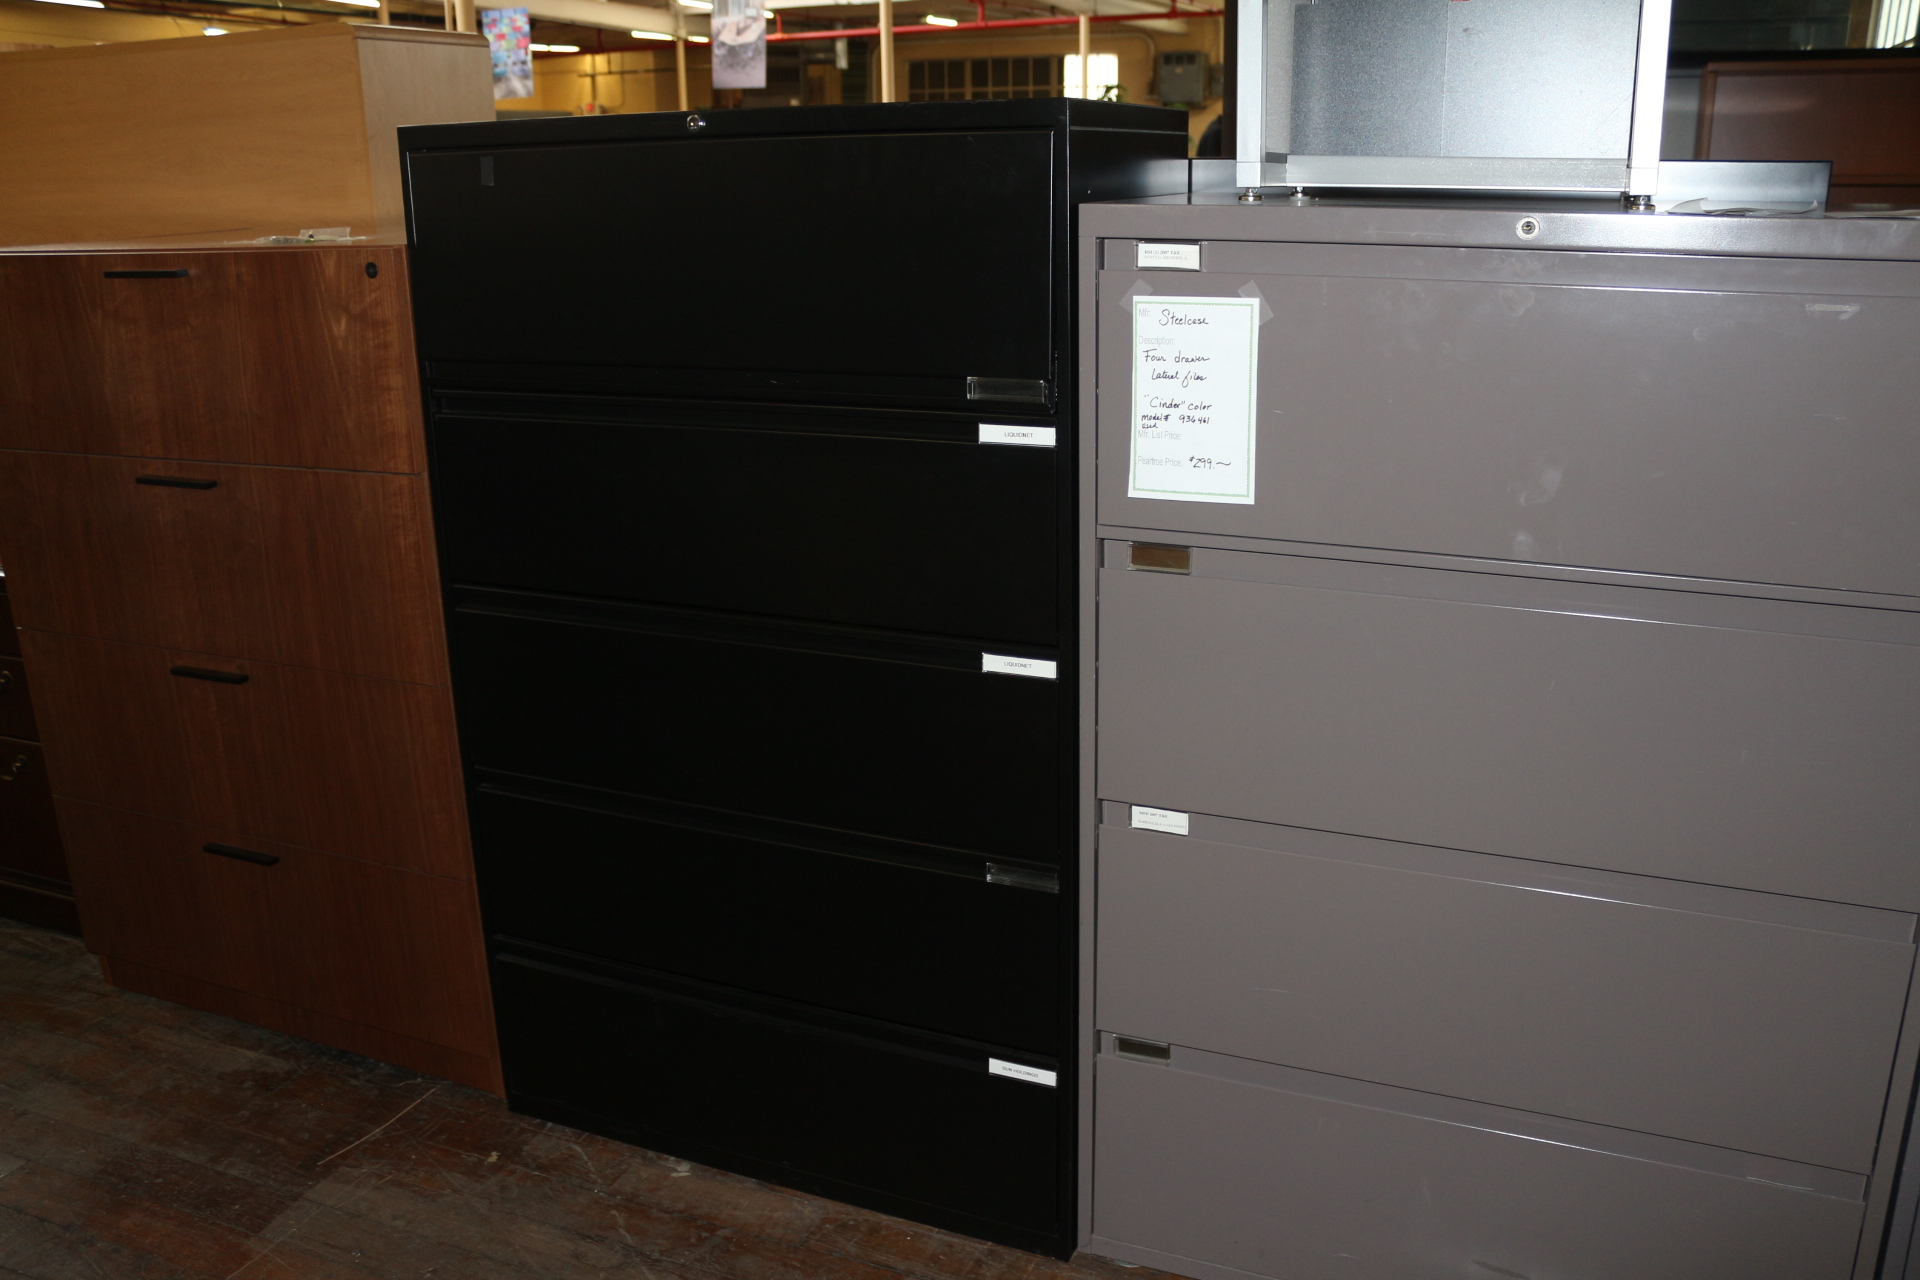 peartreeofficefurniture_peartreeofficefurniture_img_0850.jpg